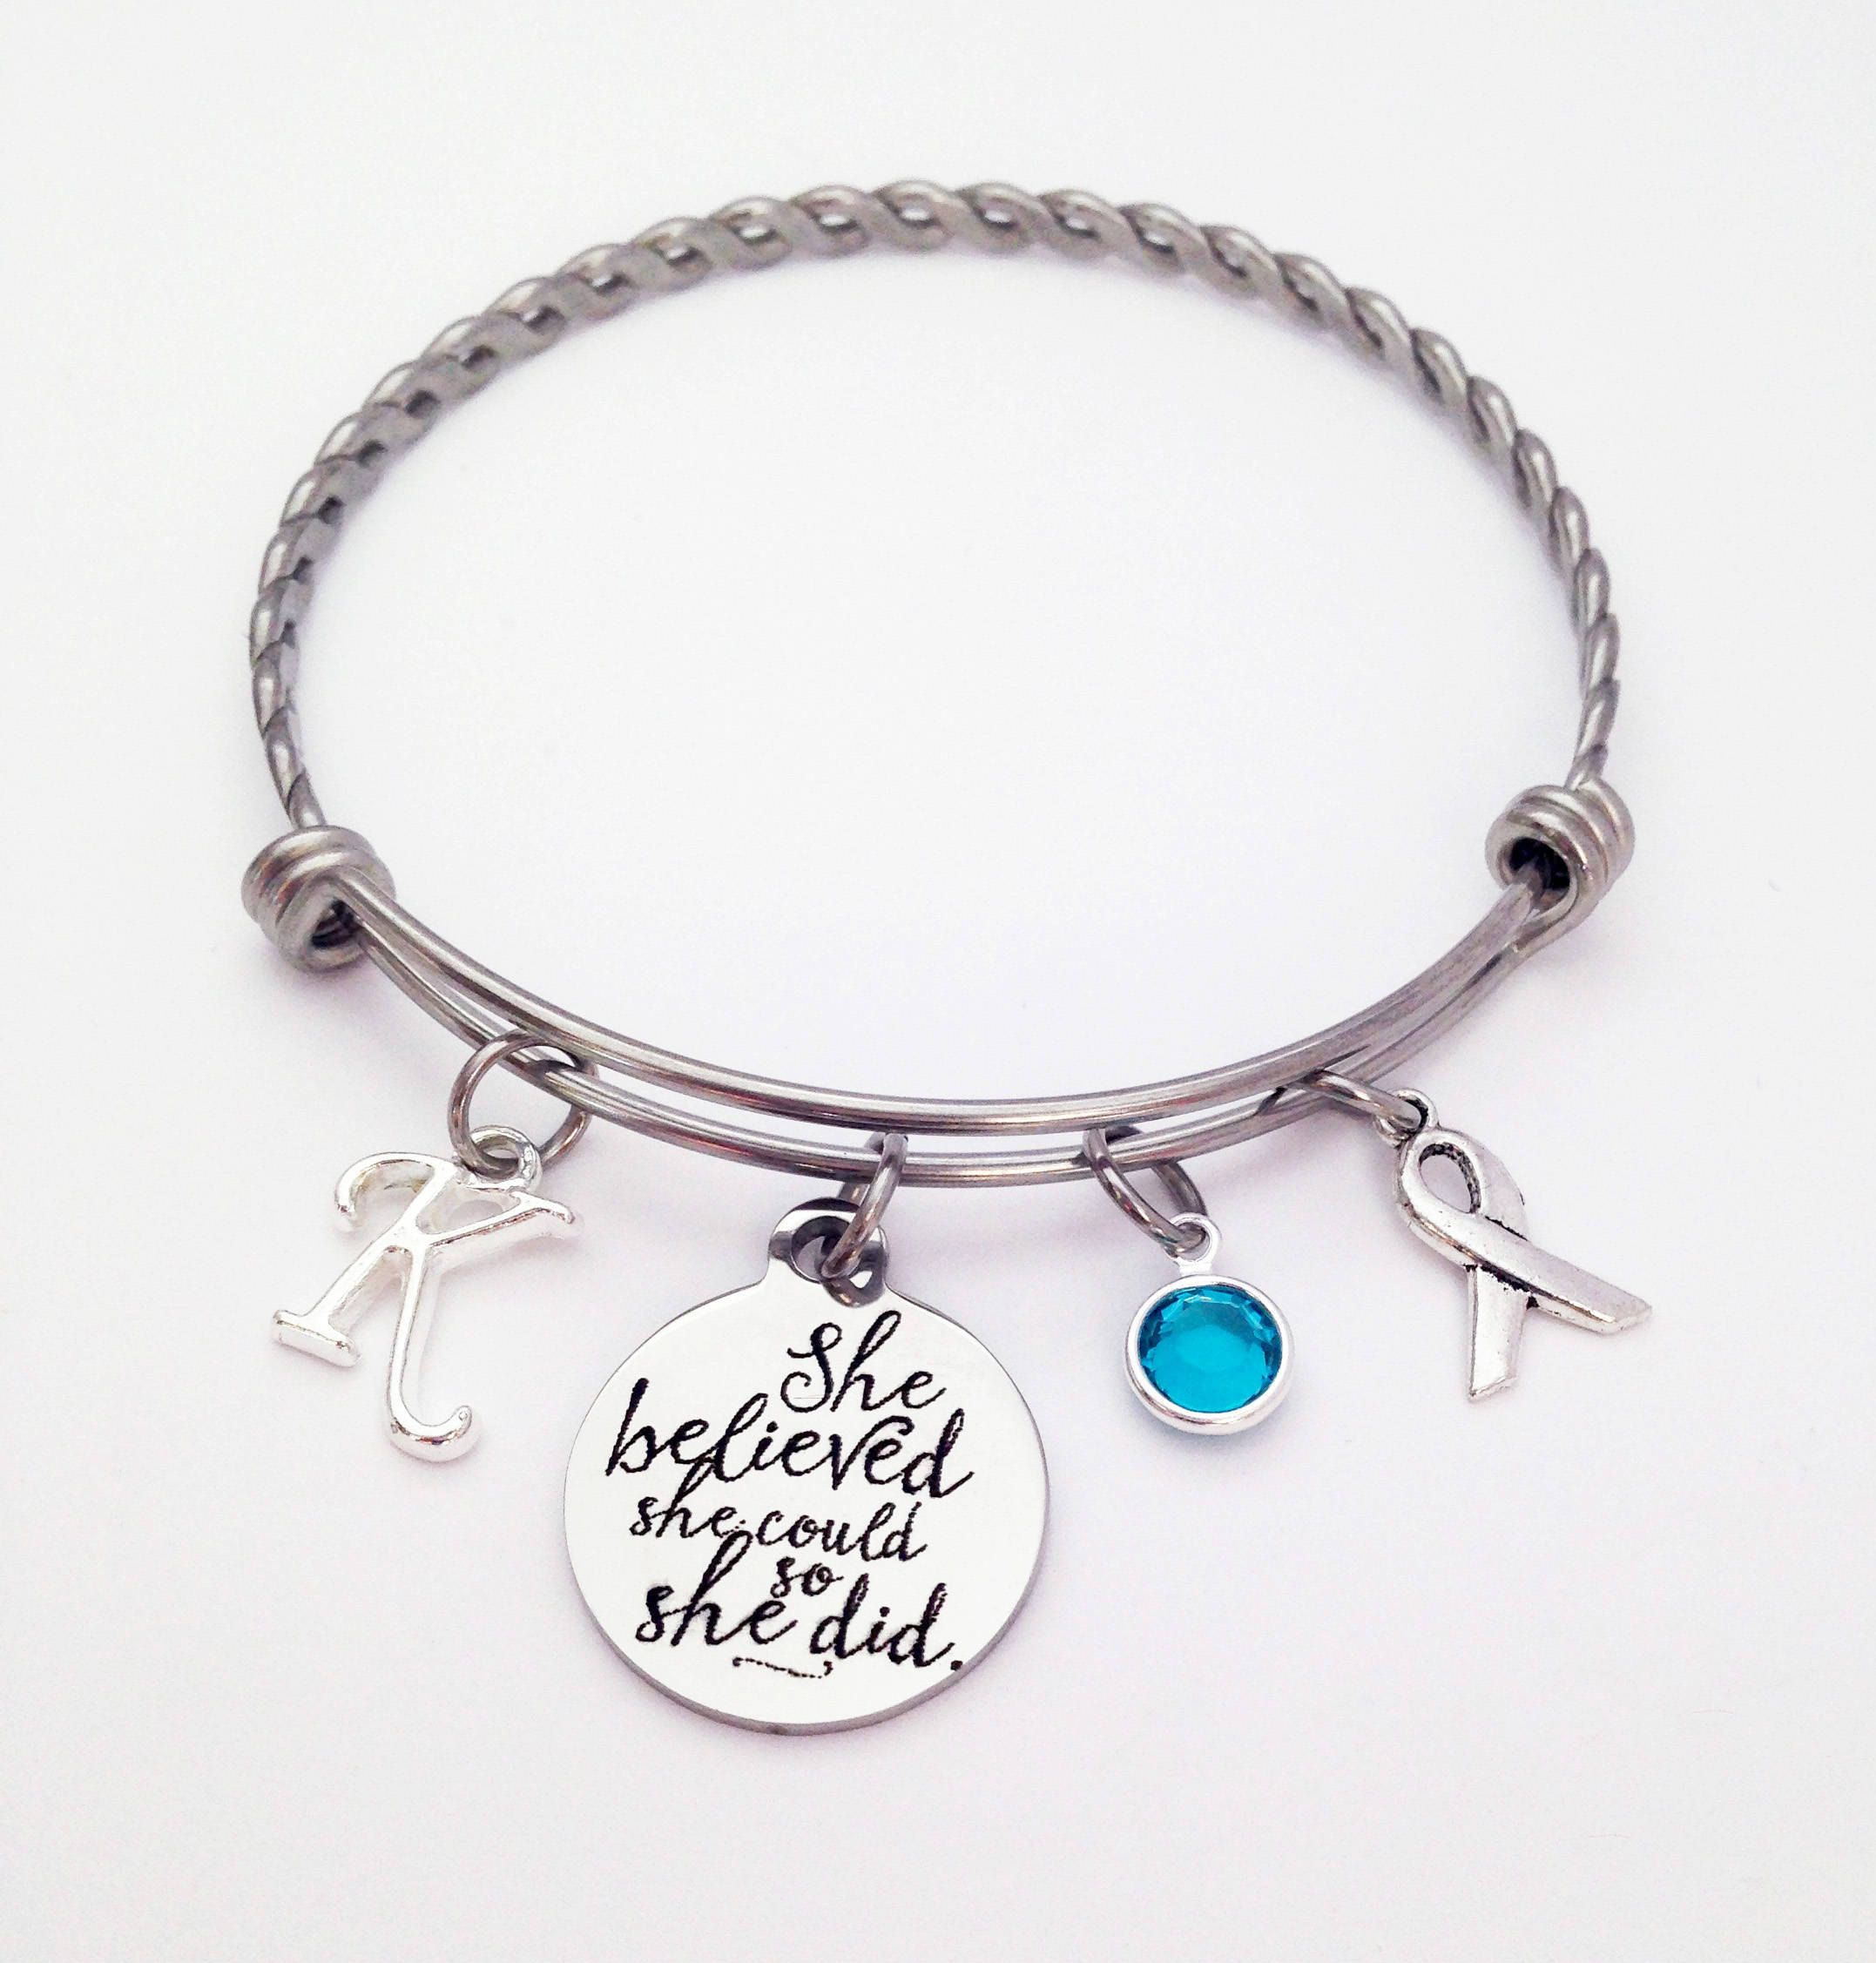 ribbon faith charm than bigger ovarian gravis your trigeminal let be myasthenia gift fear fullxfull neuralgia cancer chemo il listing bracelet teal